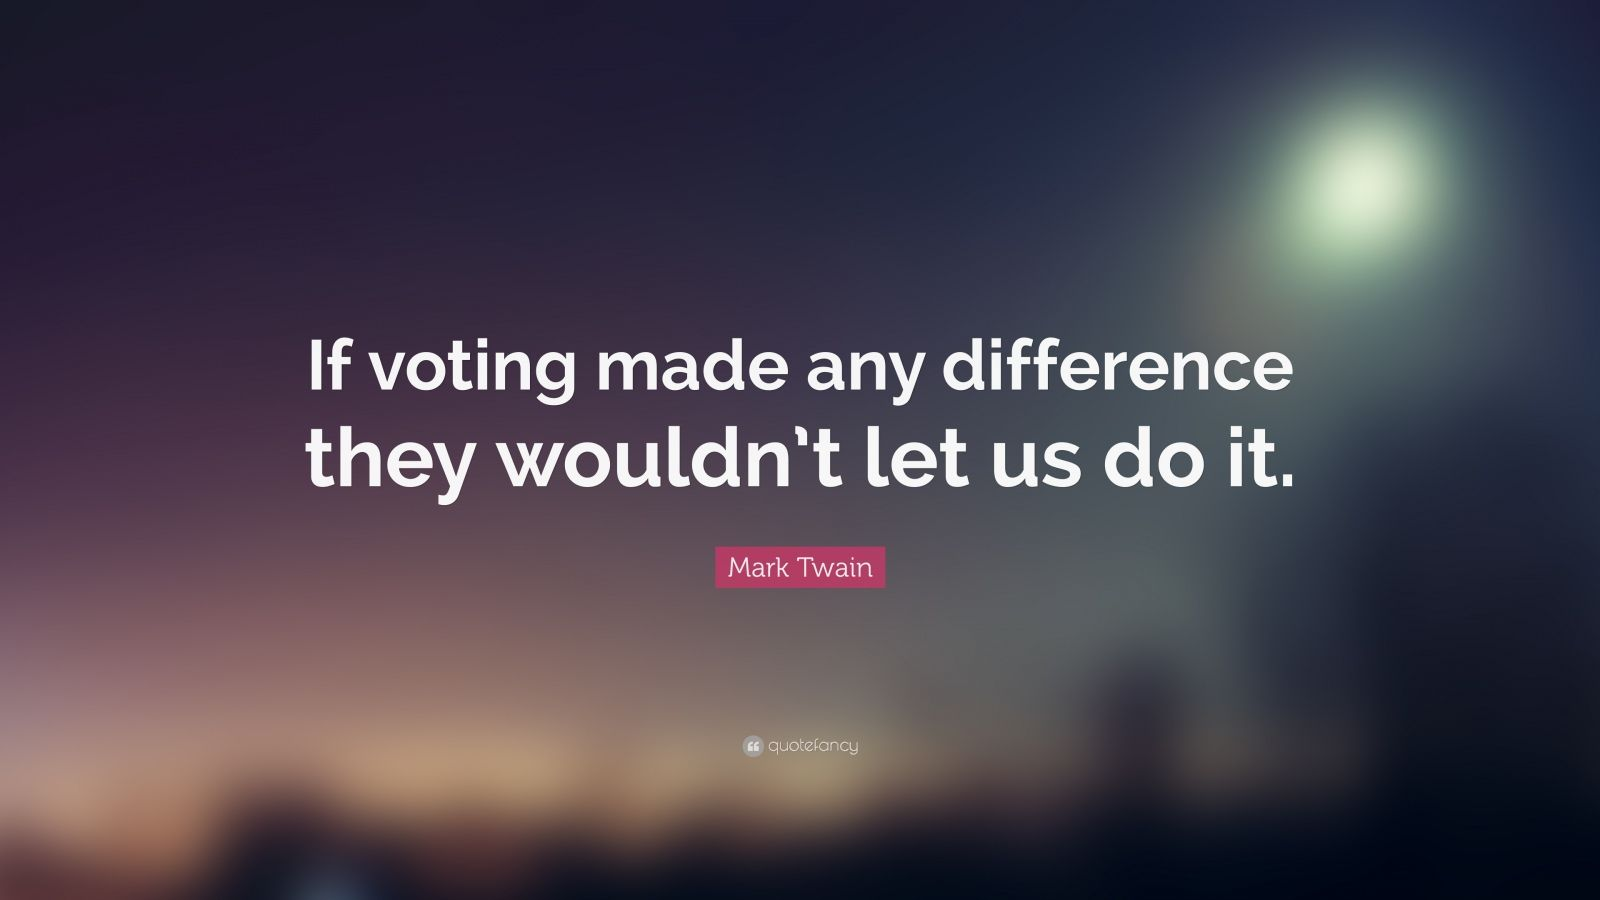 Mark Twain If Voting Made Any Difference